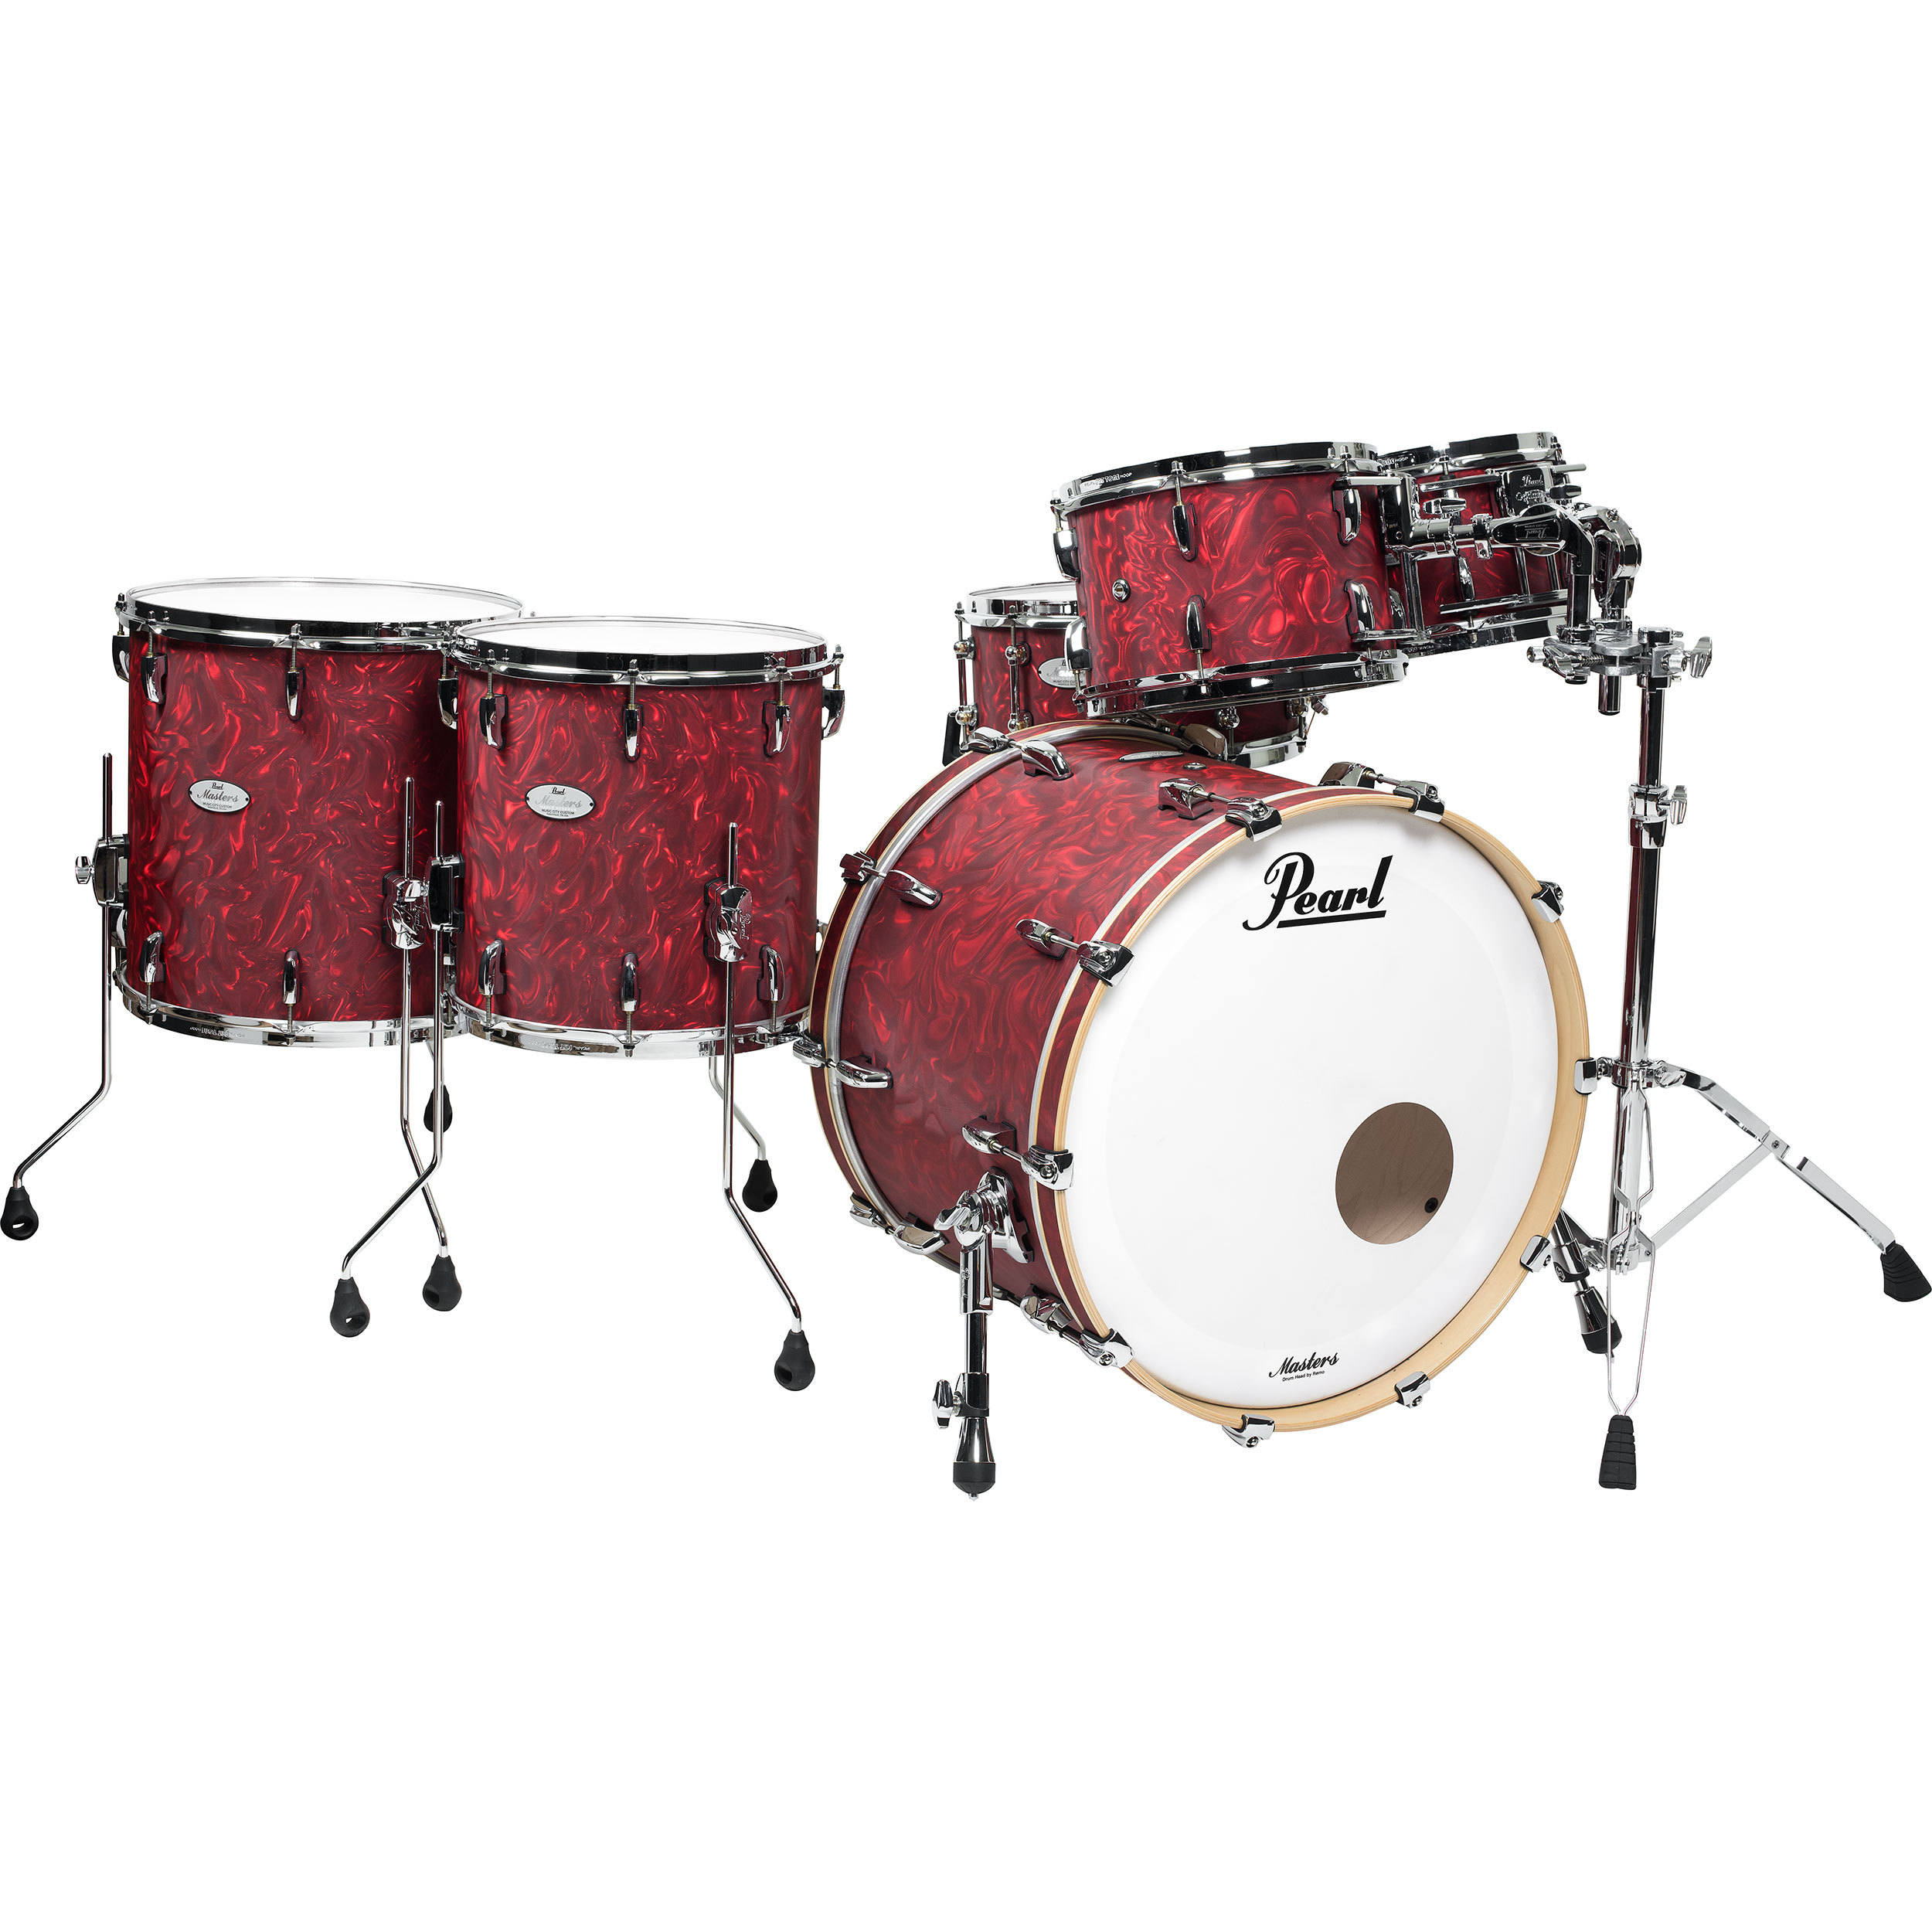 "Pearl Music City Masters Maple Reserve 6-Piece Shell Pack (22"" Bass, 10/12/14/16"" Toms, 14"" Snare) in Cranberry Satin Swirl (Demo)"